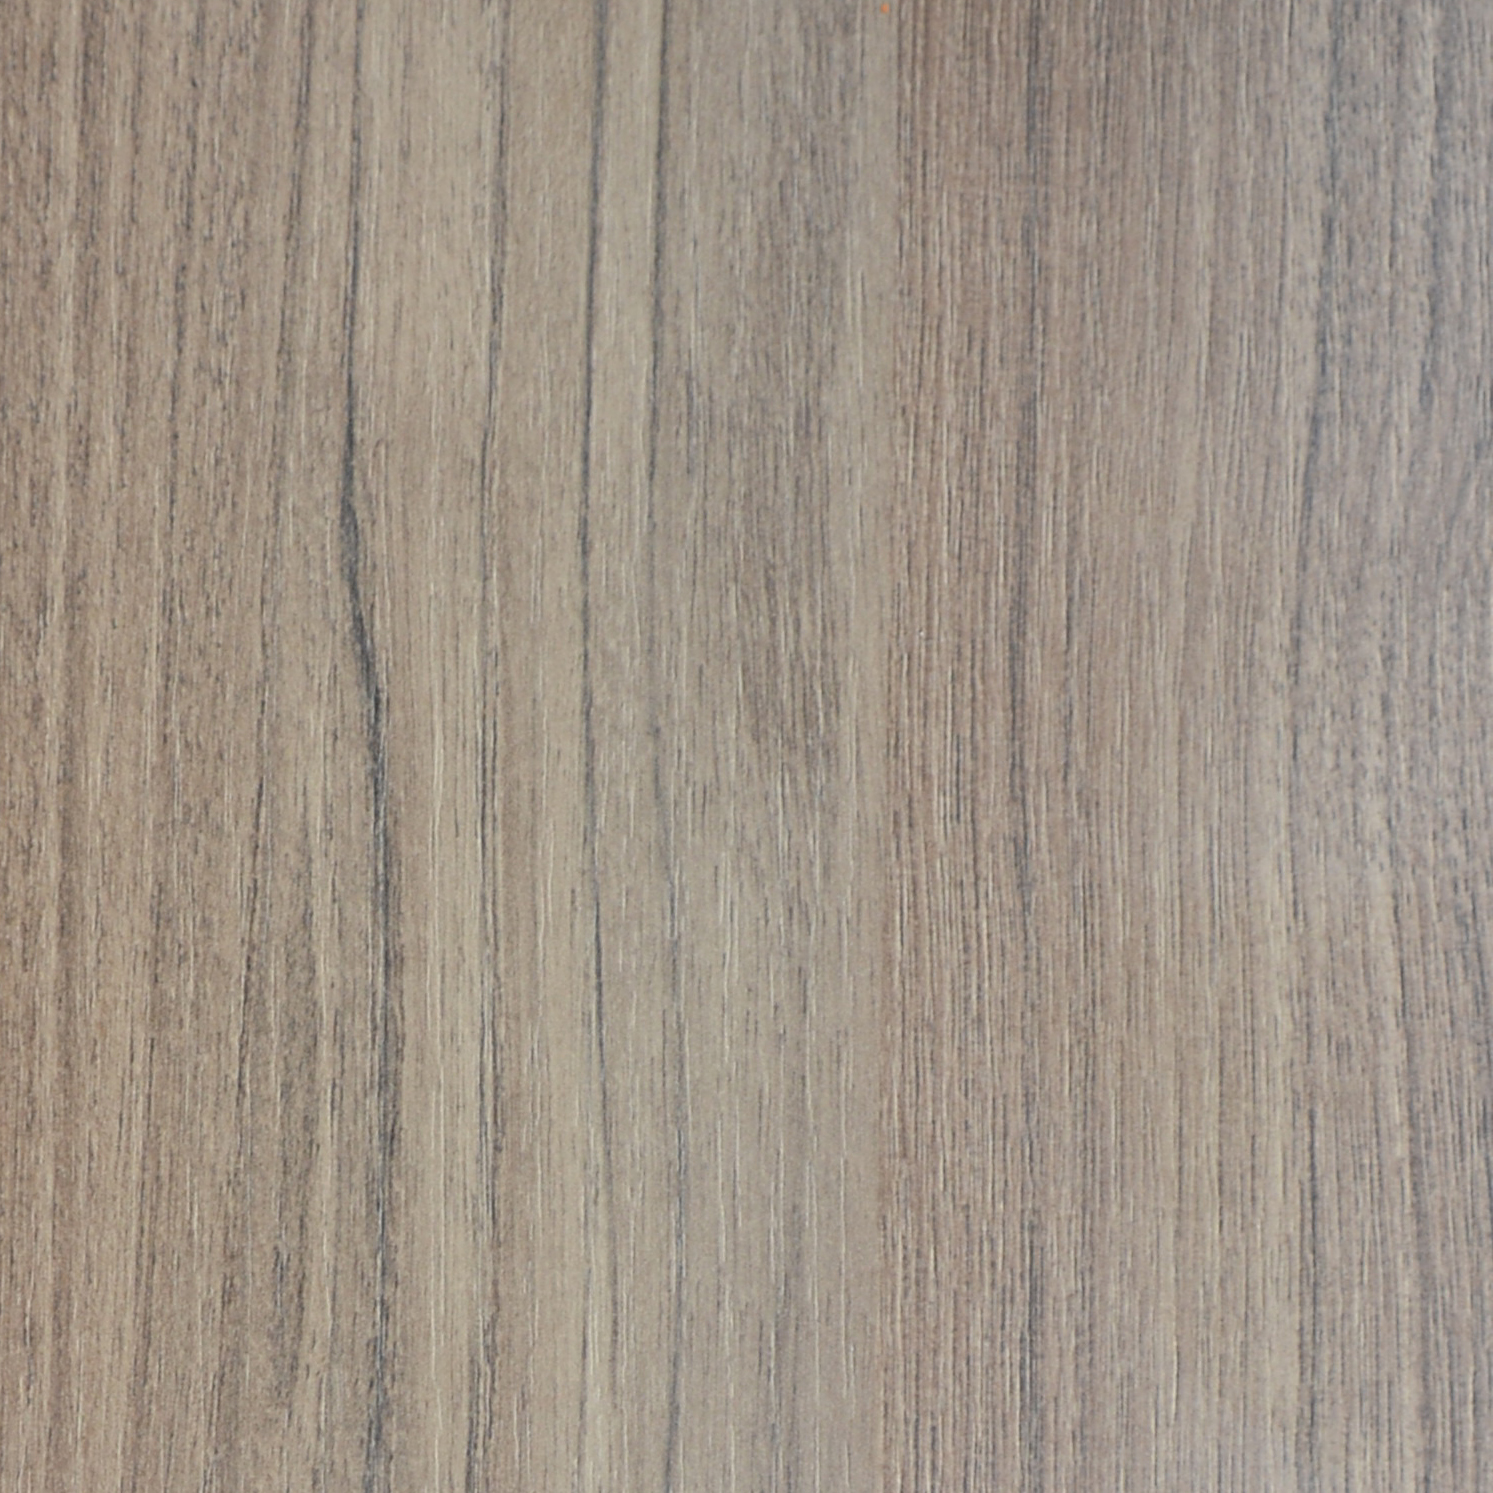 Sample of Capri, a standard finish for Creative Wood's FOCUS furniture collection